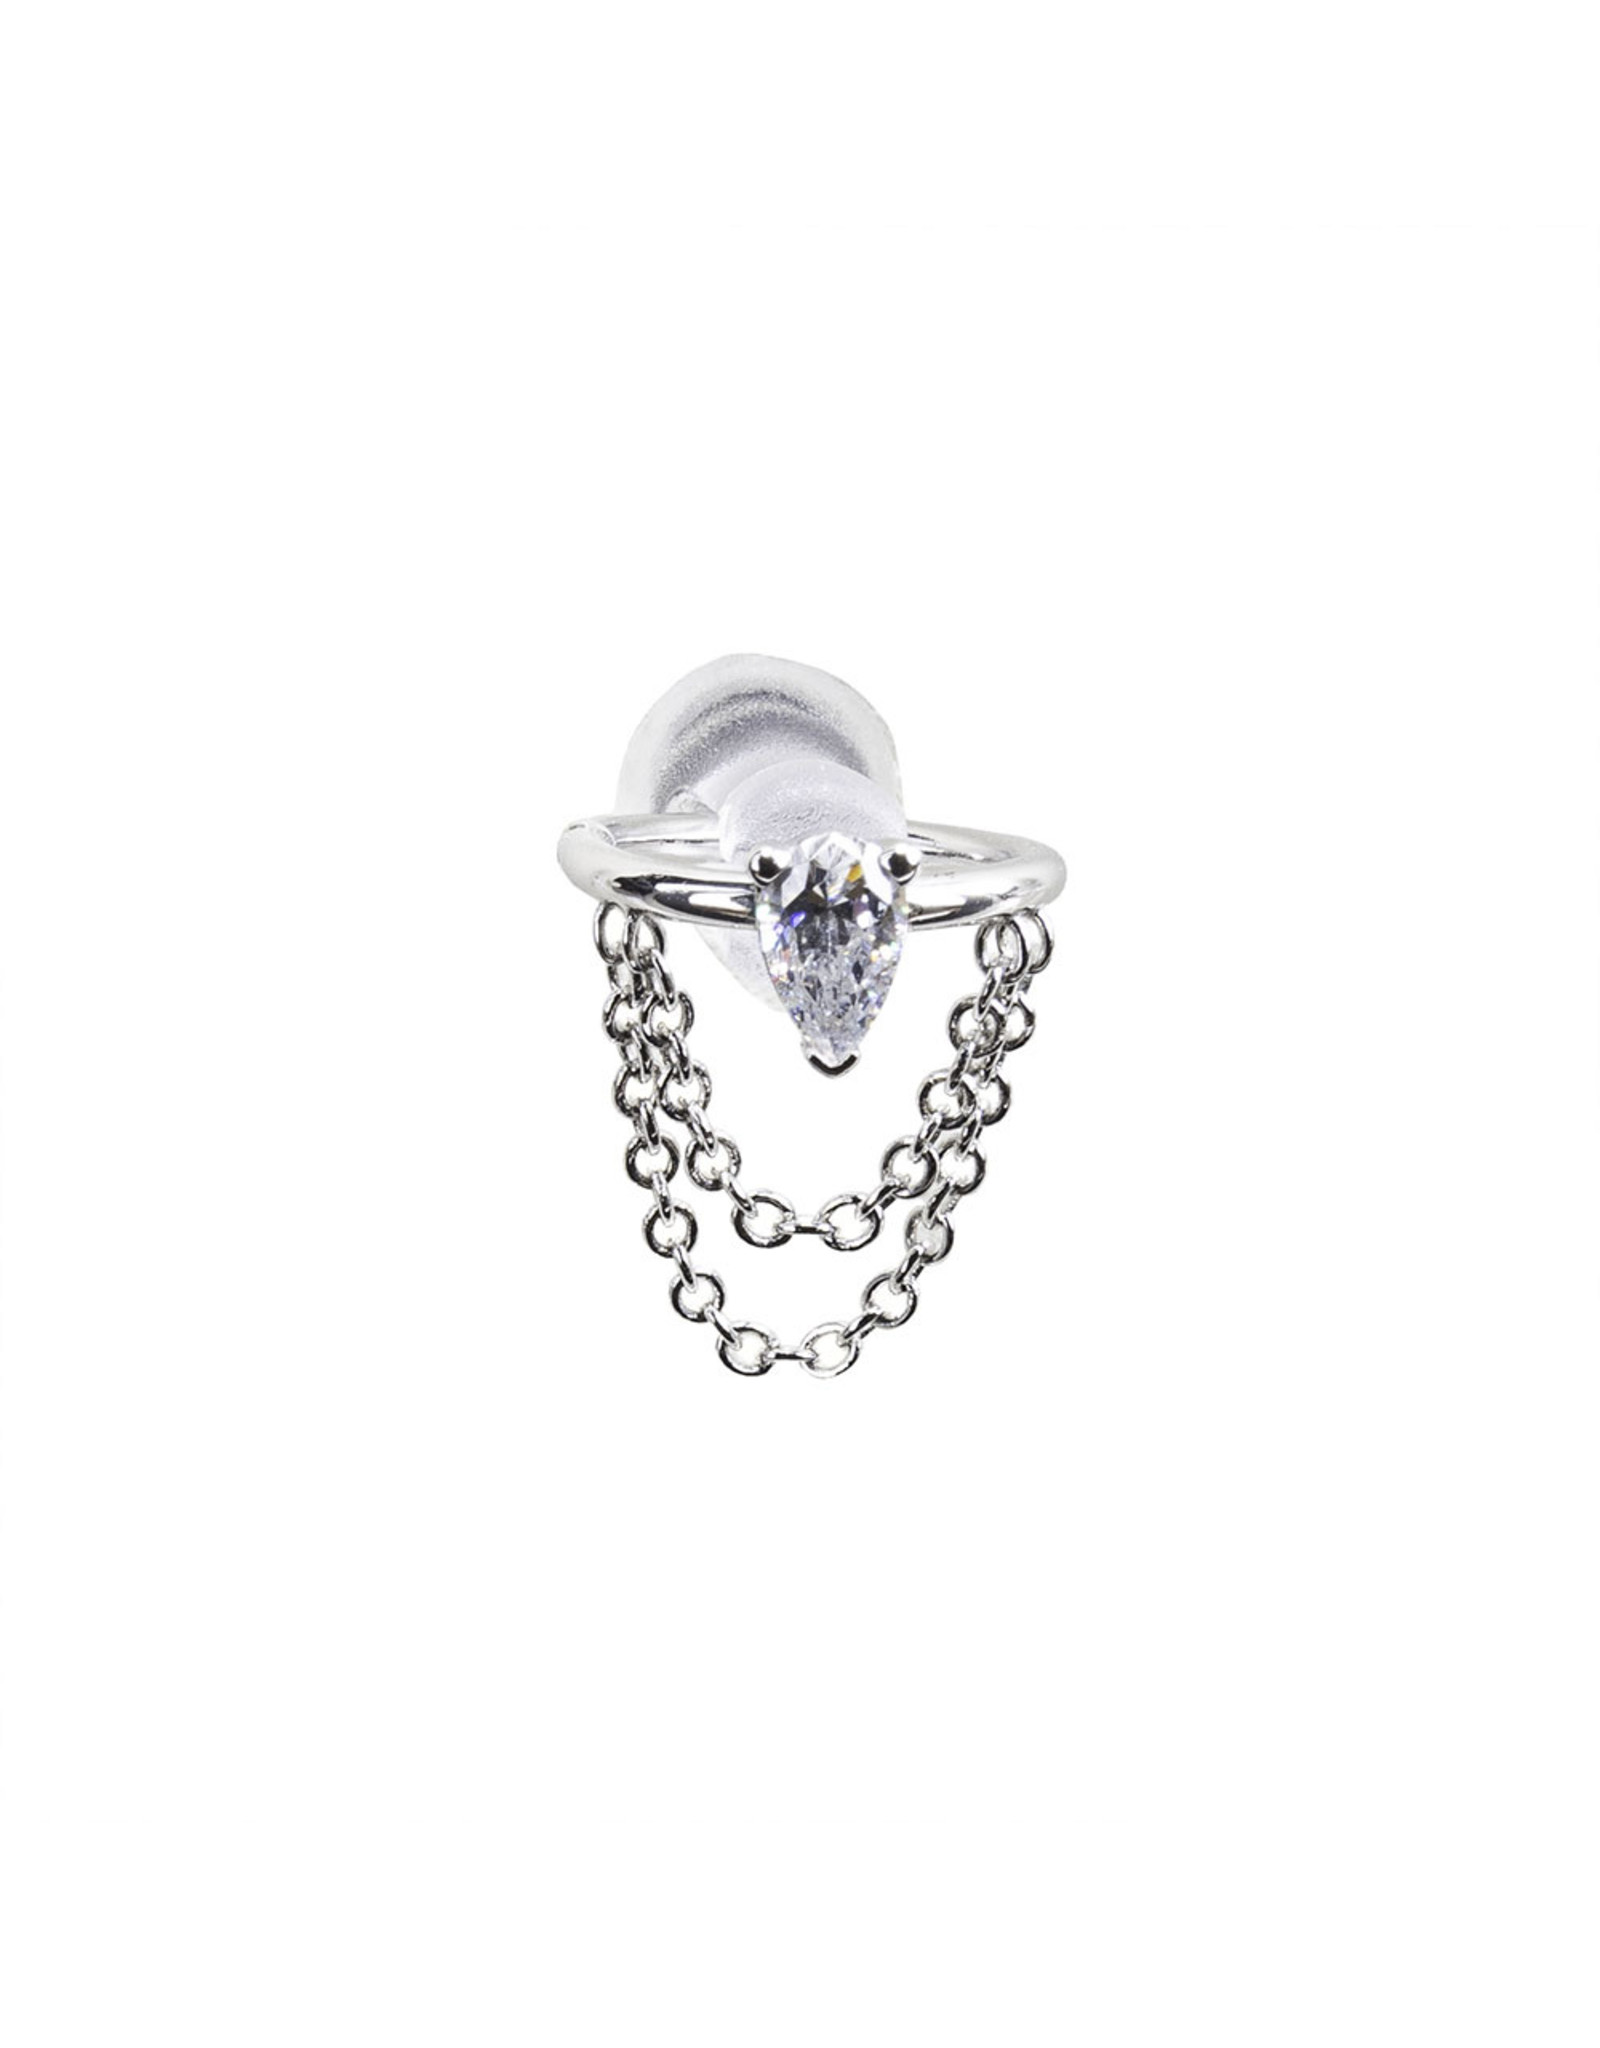 """BVLA BVLA 18g 9/32 white gold """"Call Me!"""" seam ring with 4x2.45 CZ pear and cable chain"""